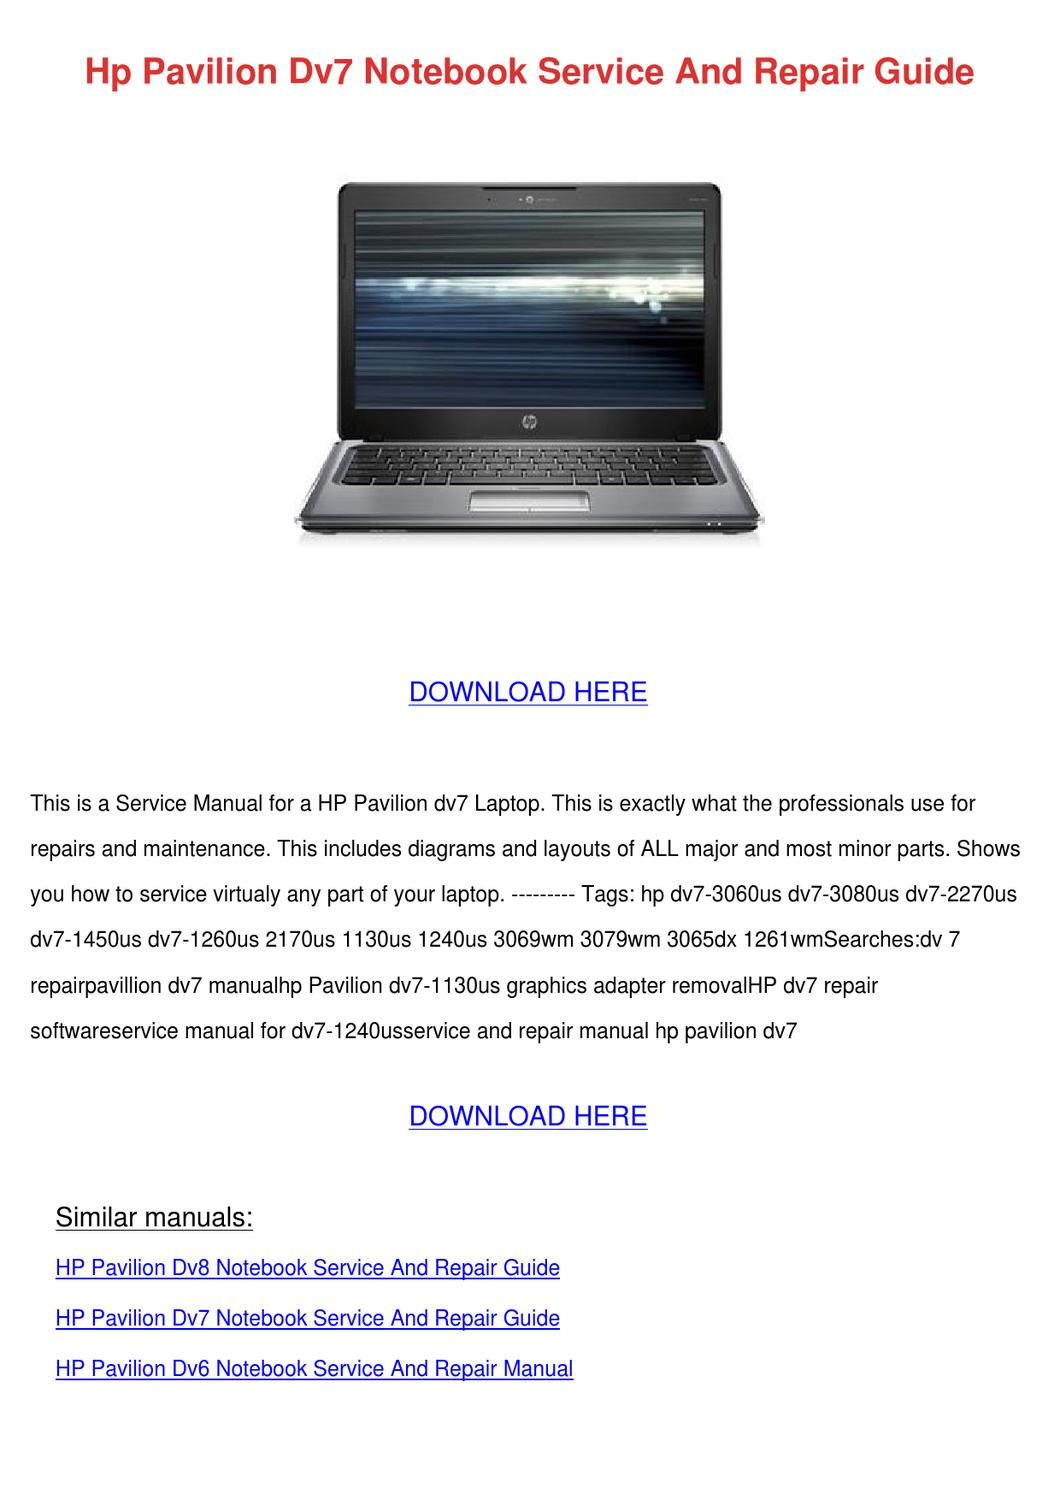 Hp Pavilion Dv7 Notebook Service And Repair G by Anglea Genuario - issuu